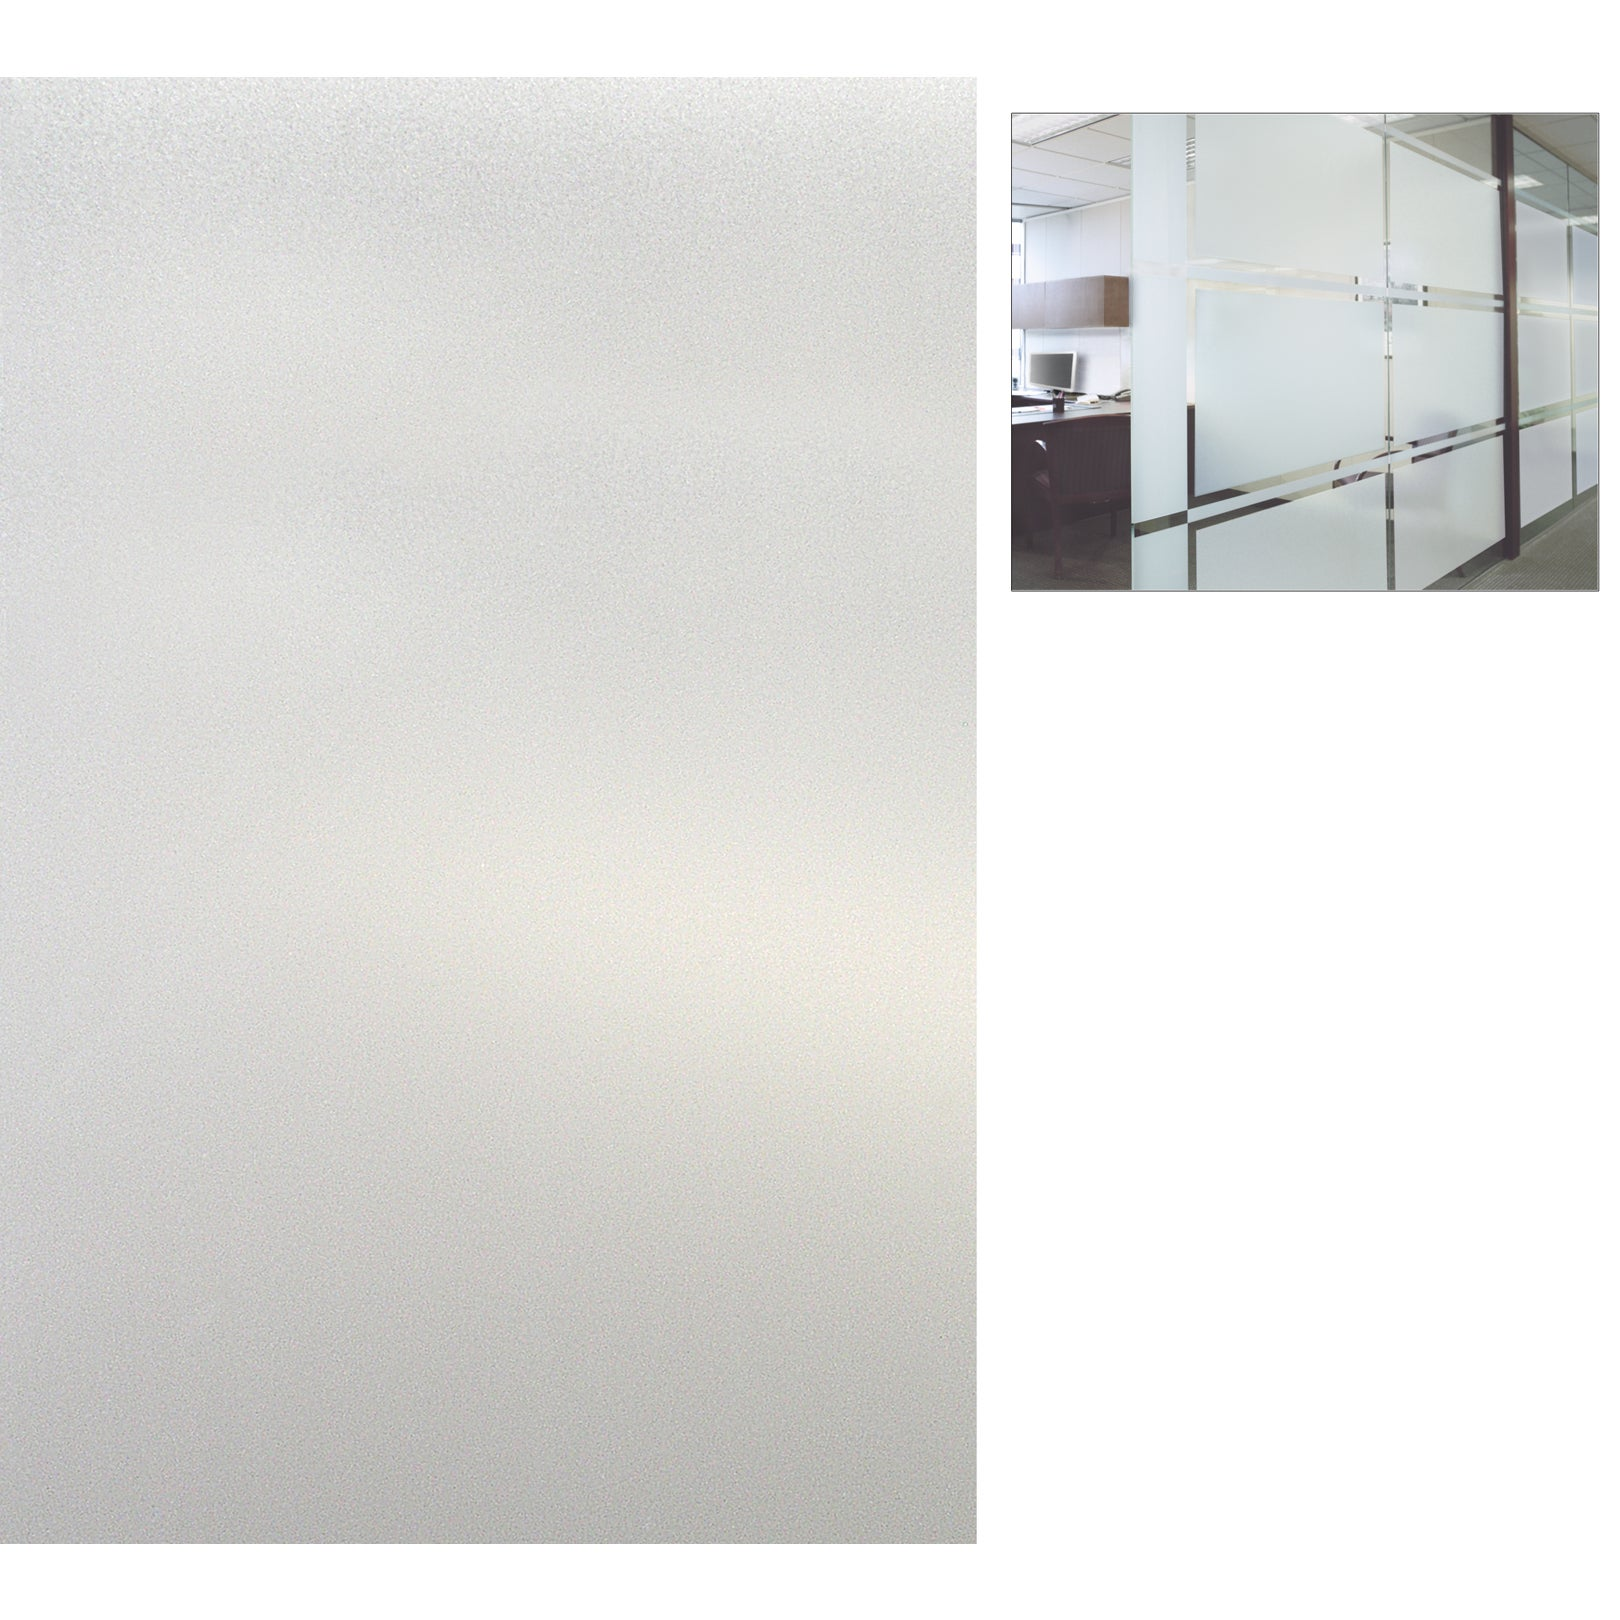 Artscape 01 0124 12 X 83 Etched Gl Design Sidelights Window Film Free Shipping On Orders Over 45 12544788